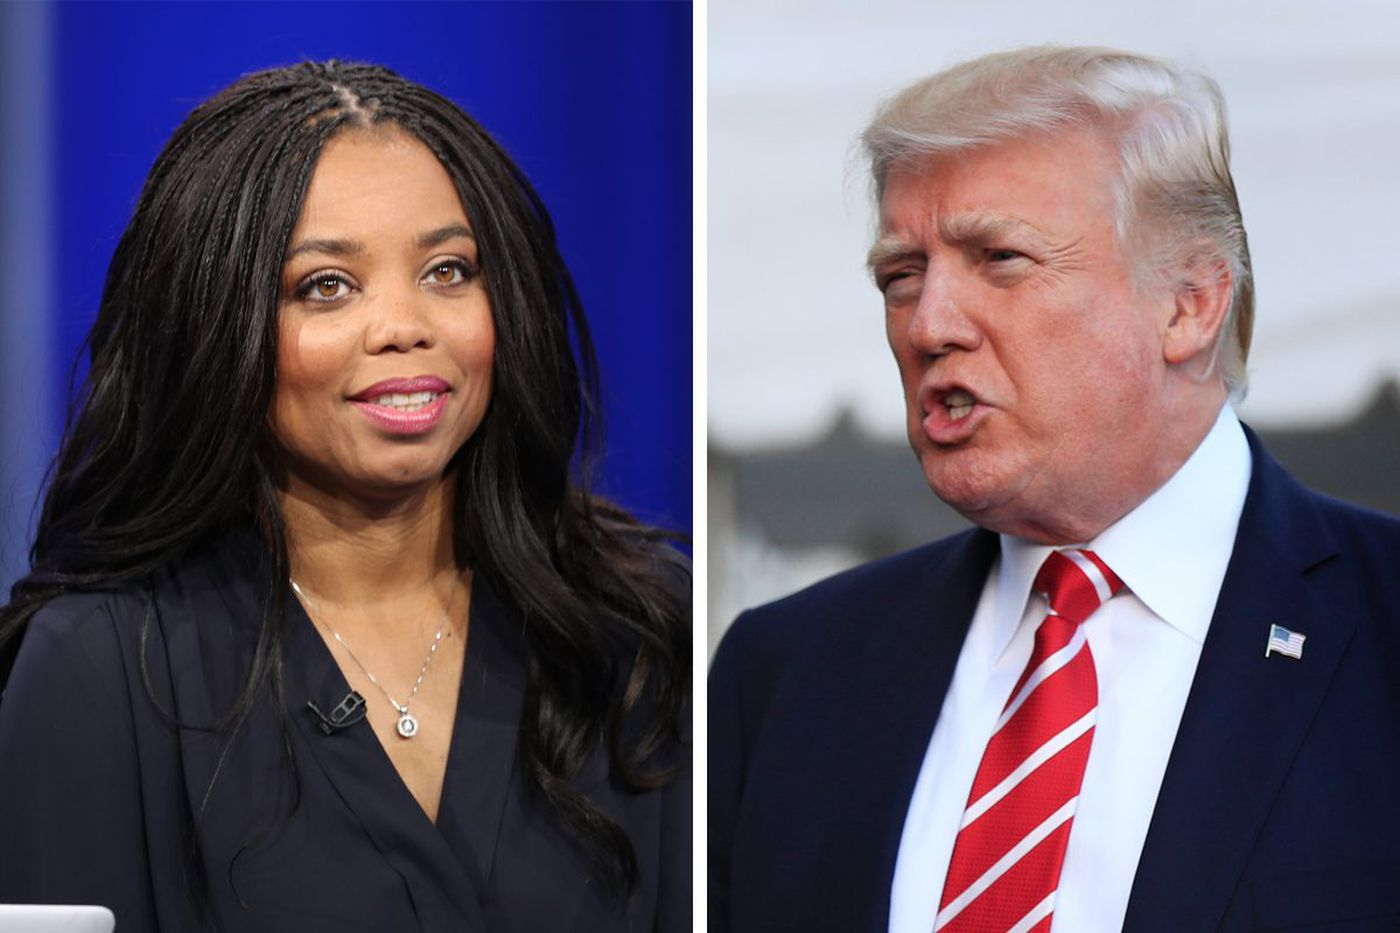 Trump goes after suspended ESPN host Jemele Hill and threatens the NFL